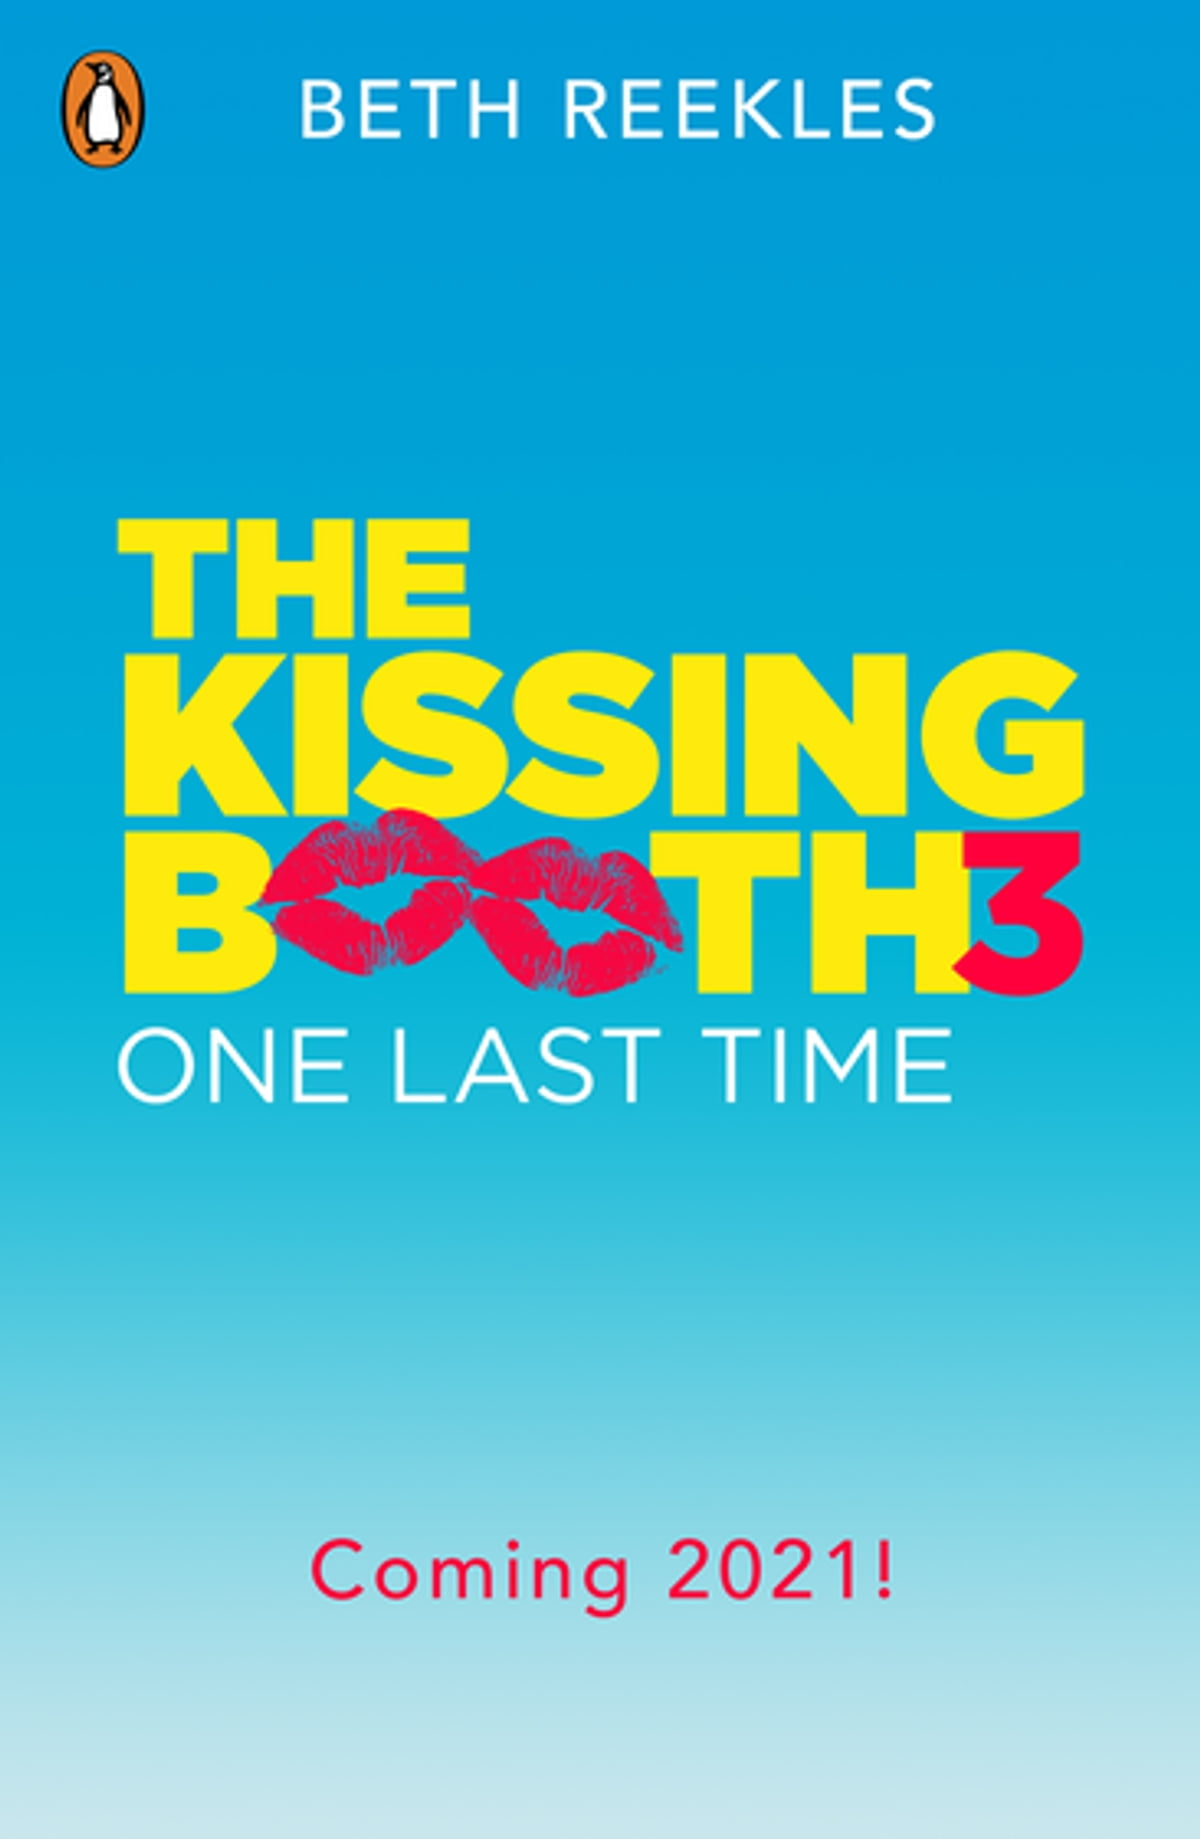 The Kissing Booth Livre Pdf : kissing, booth, livre, Kissing, Booth, EBook, Reekles, 9780241481646, Rakuten, Ireland